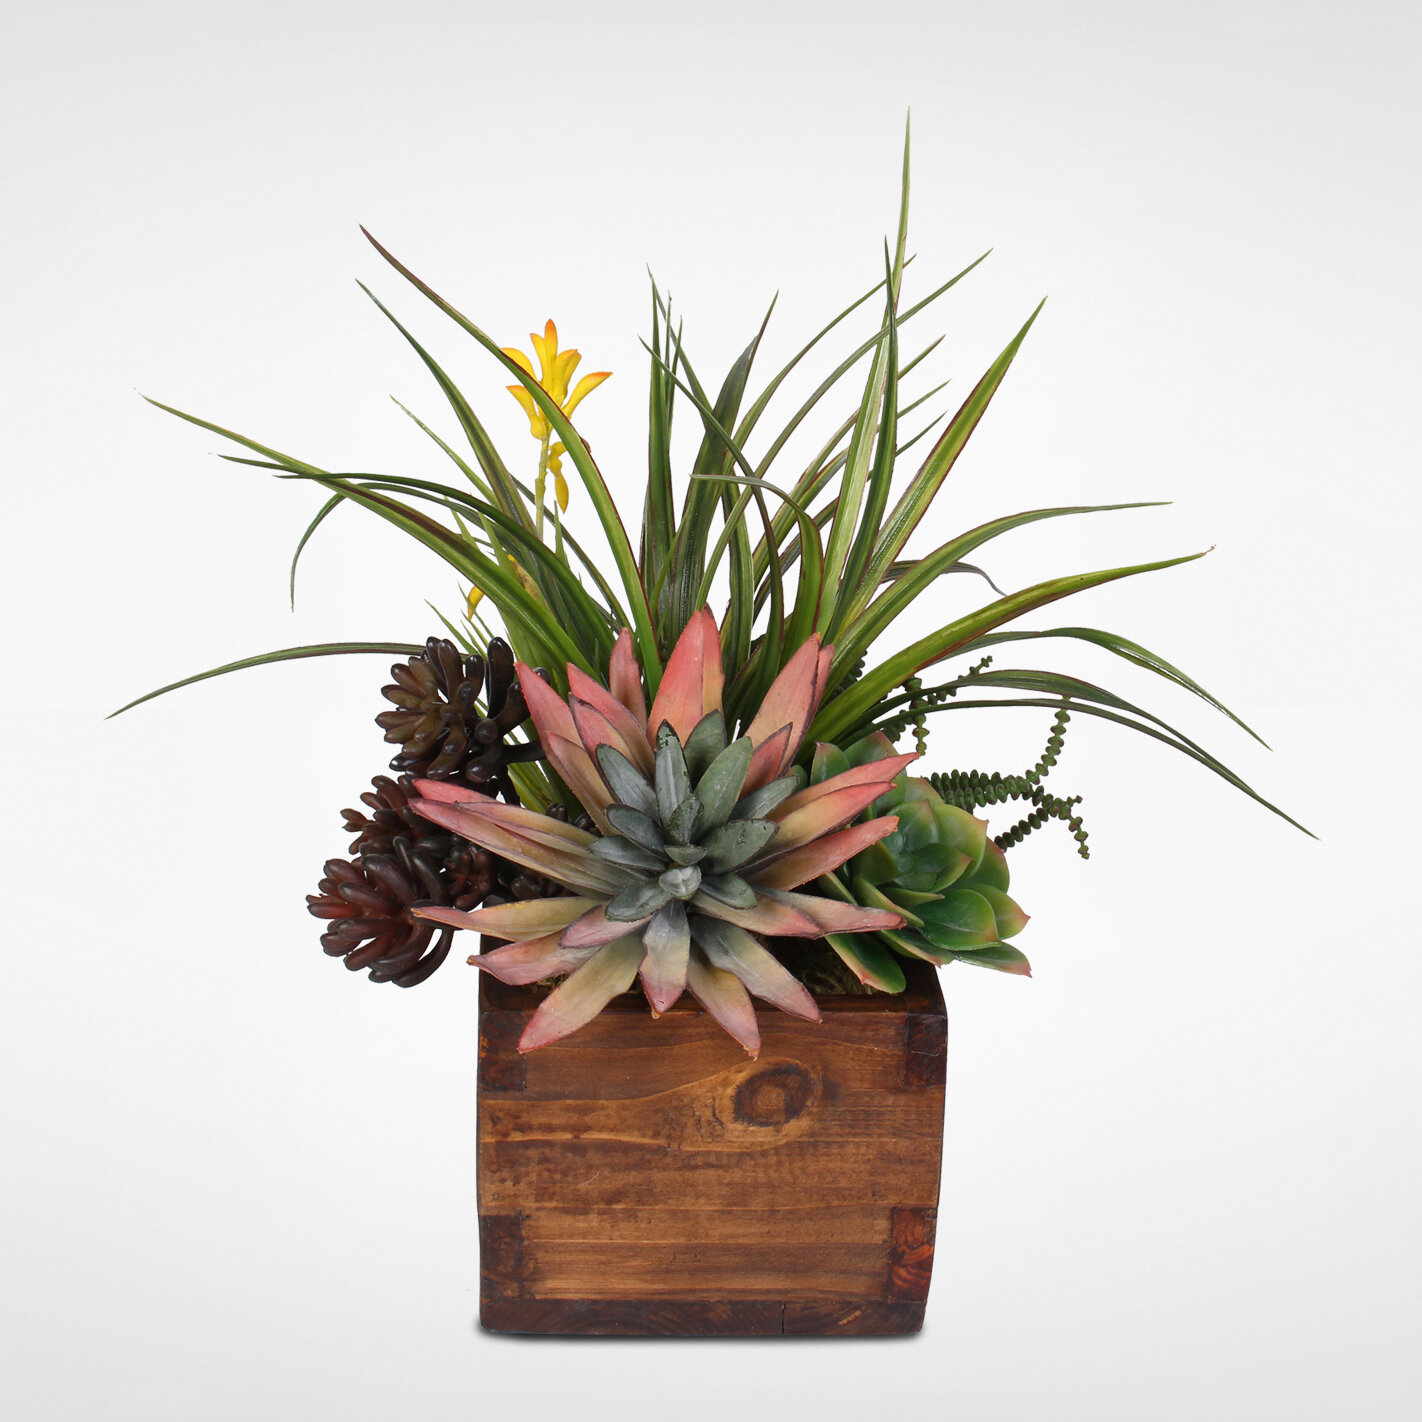 17 Stories Artificial Desktop Agave Pelona With Succulent Variety